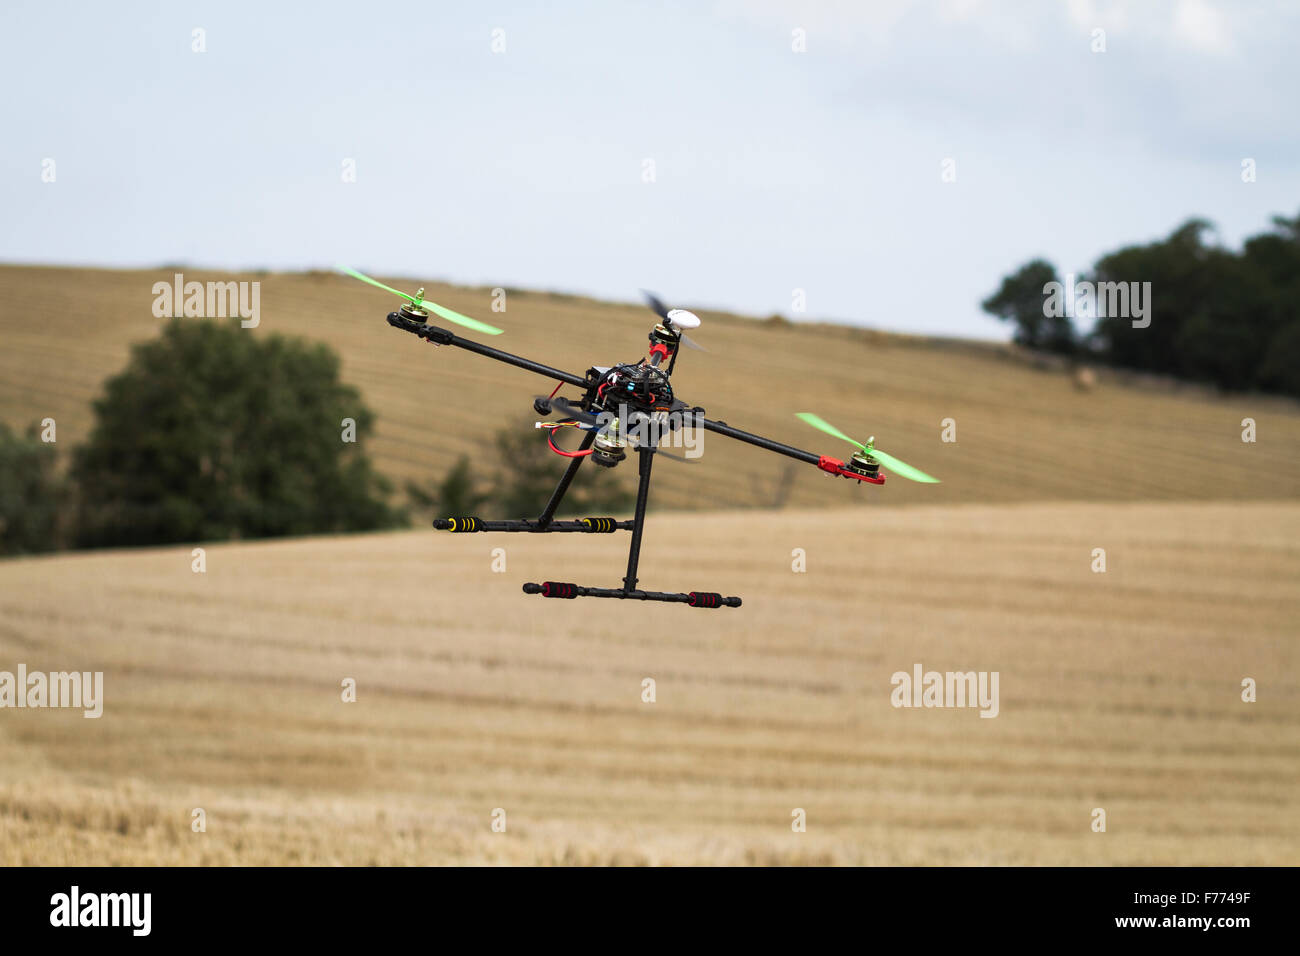 Quadcopter in flight - Stock Image